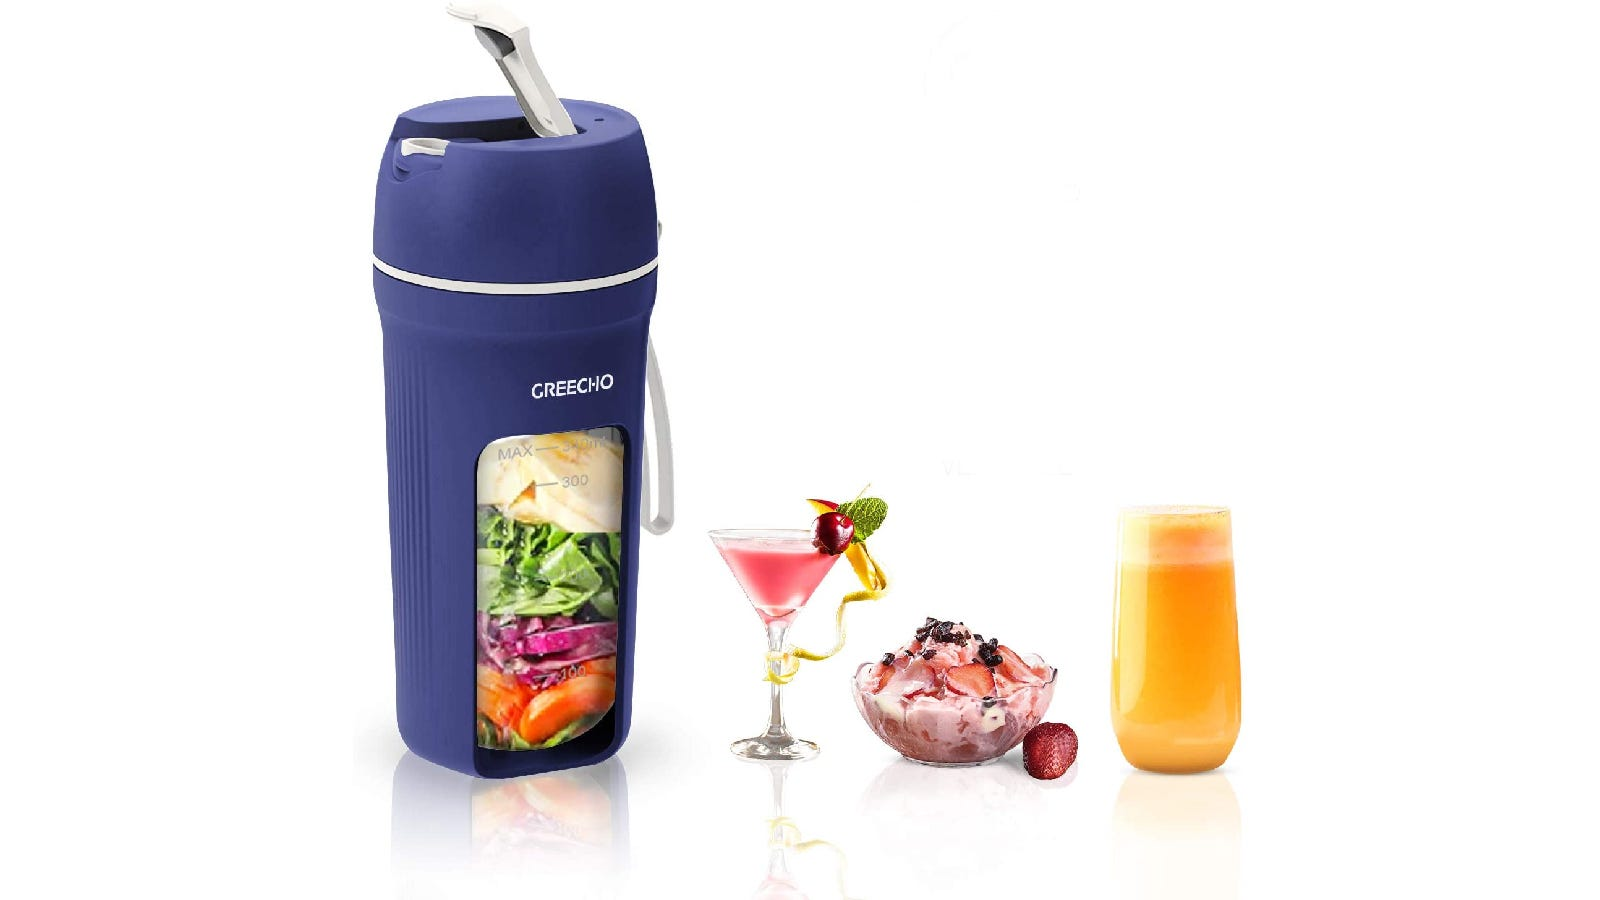 blue personal blender cup filled with veggies; lined up to the right is a blended cocktail, fruity ice cream, and an orange smoothie